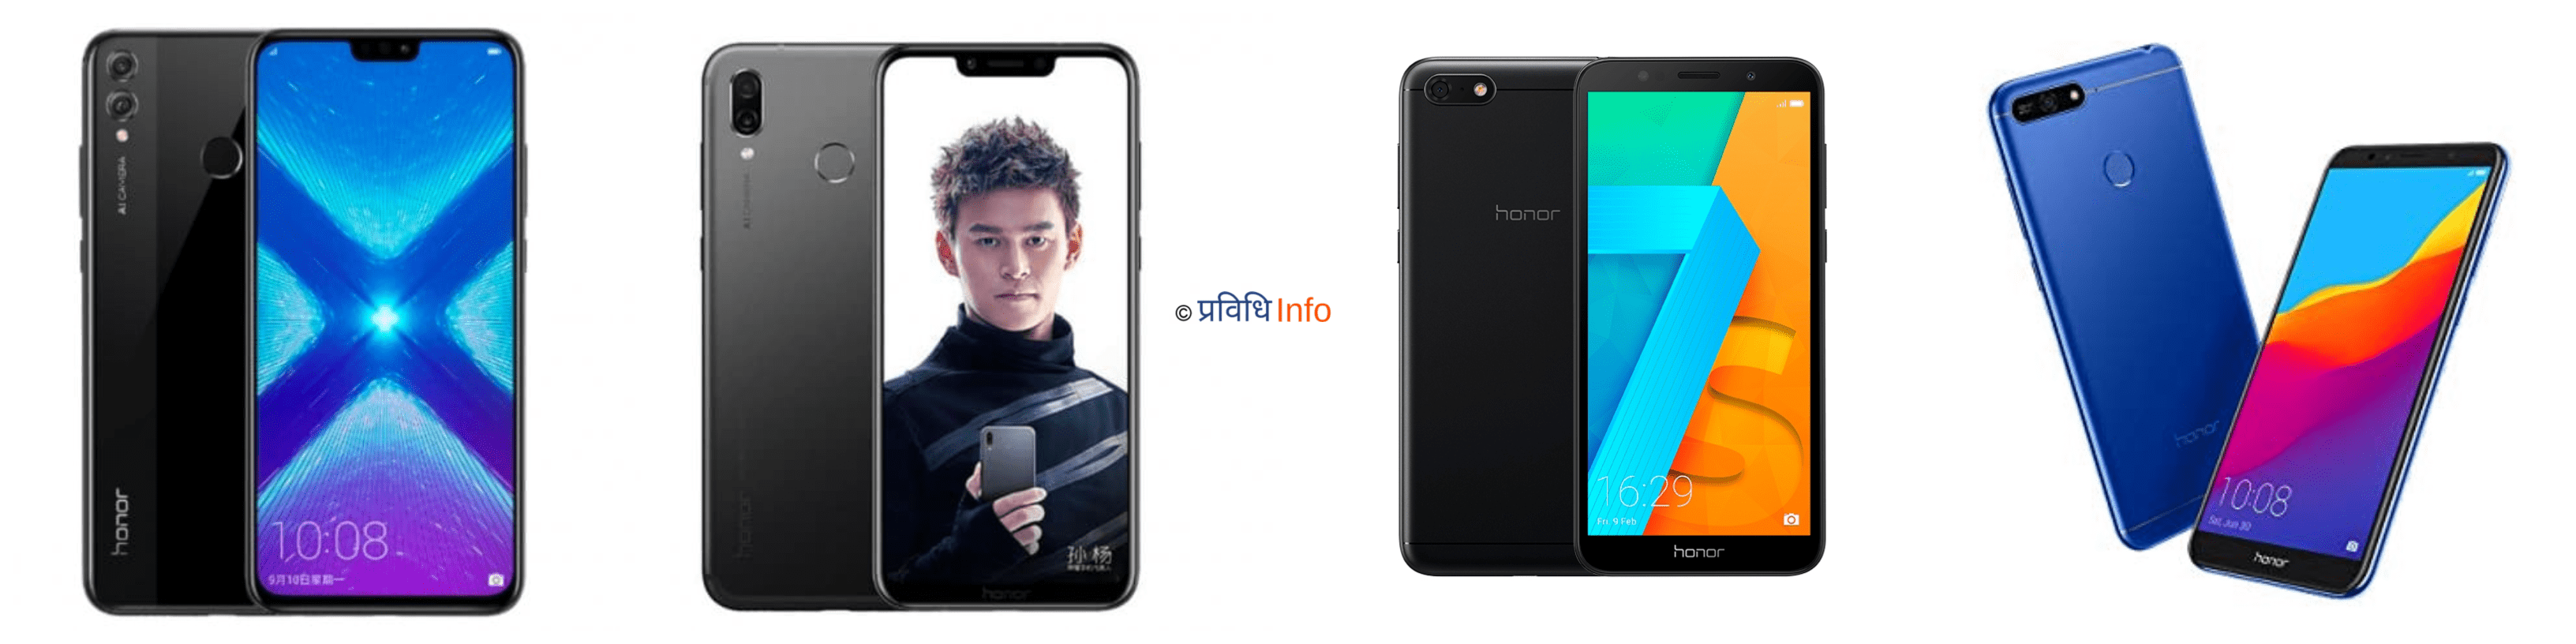 HONOR Mobile Price 2019